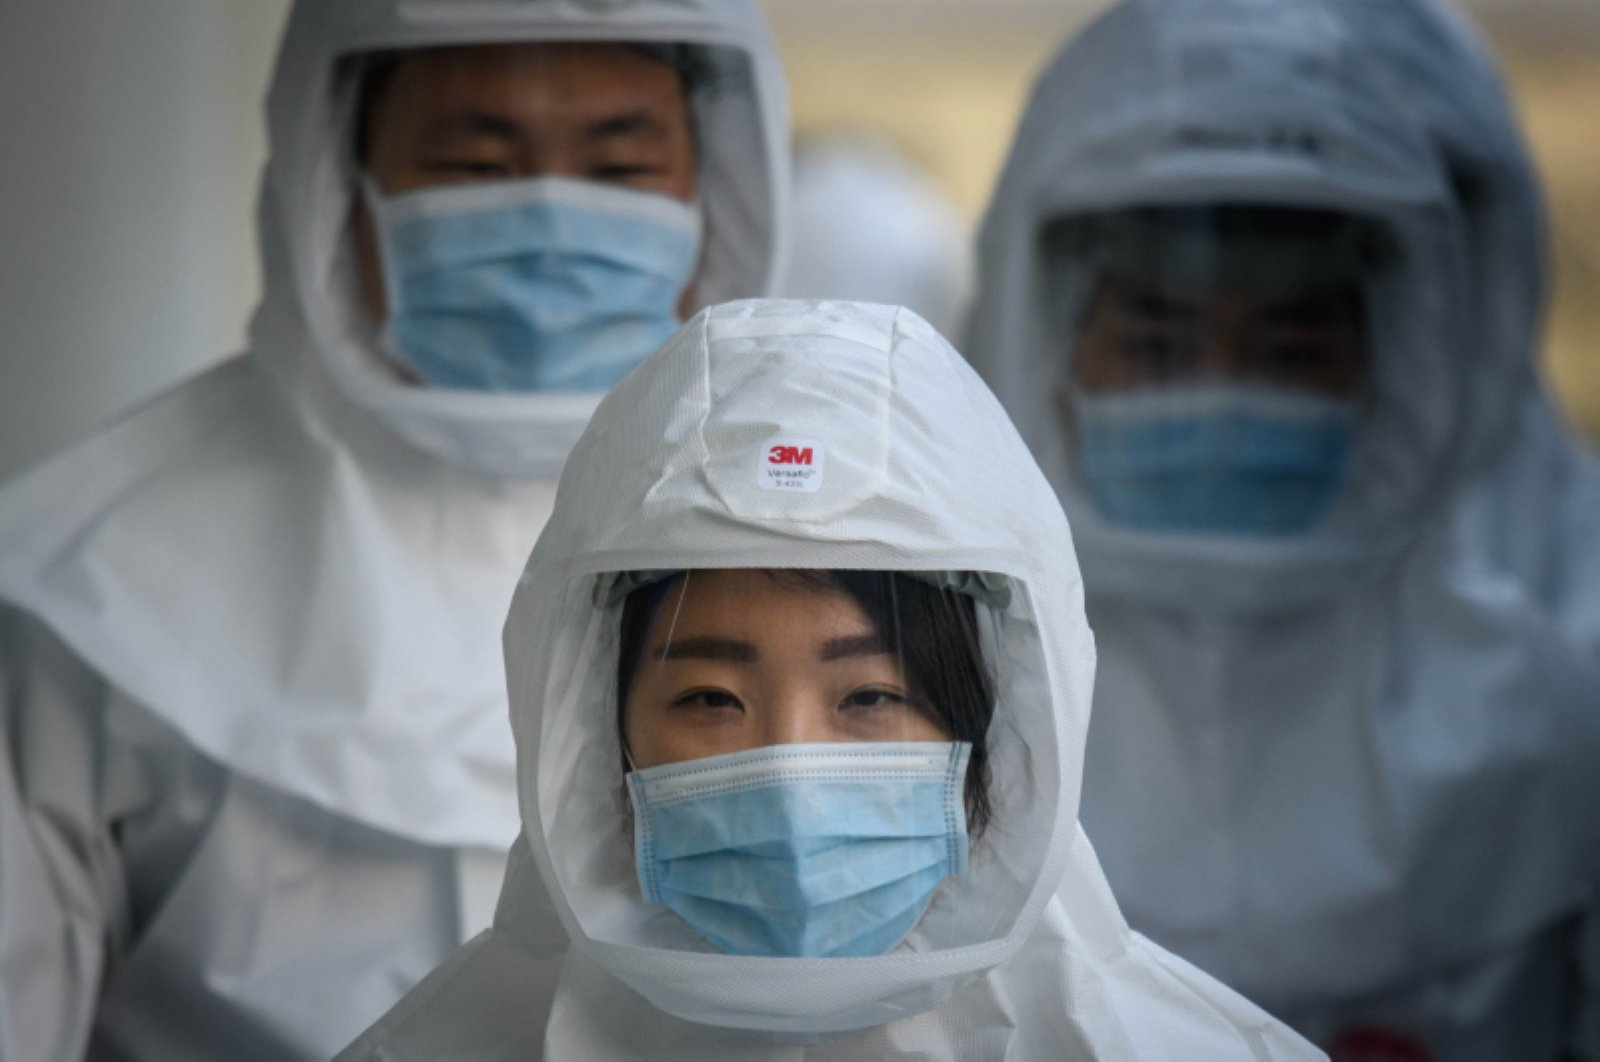 Medical workers wearing protective clothing against the novel coronavirus walk to a decontamination area at the Keimyung University Dongsan Hospital in Daegu, South Korea, March 12, 2020. (AFP Photo)